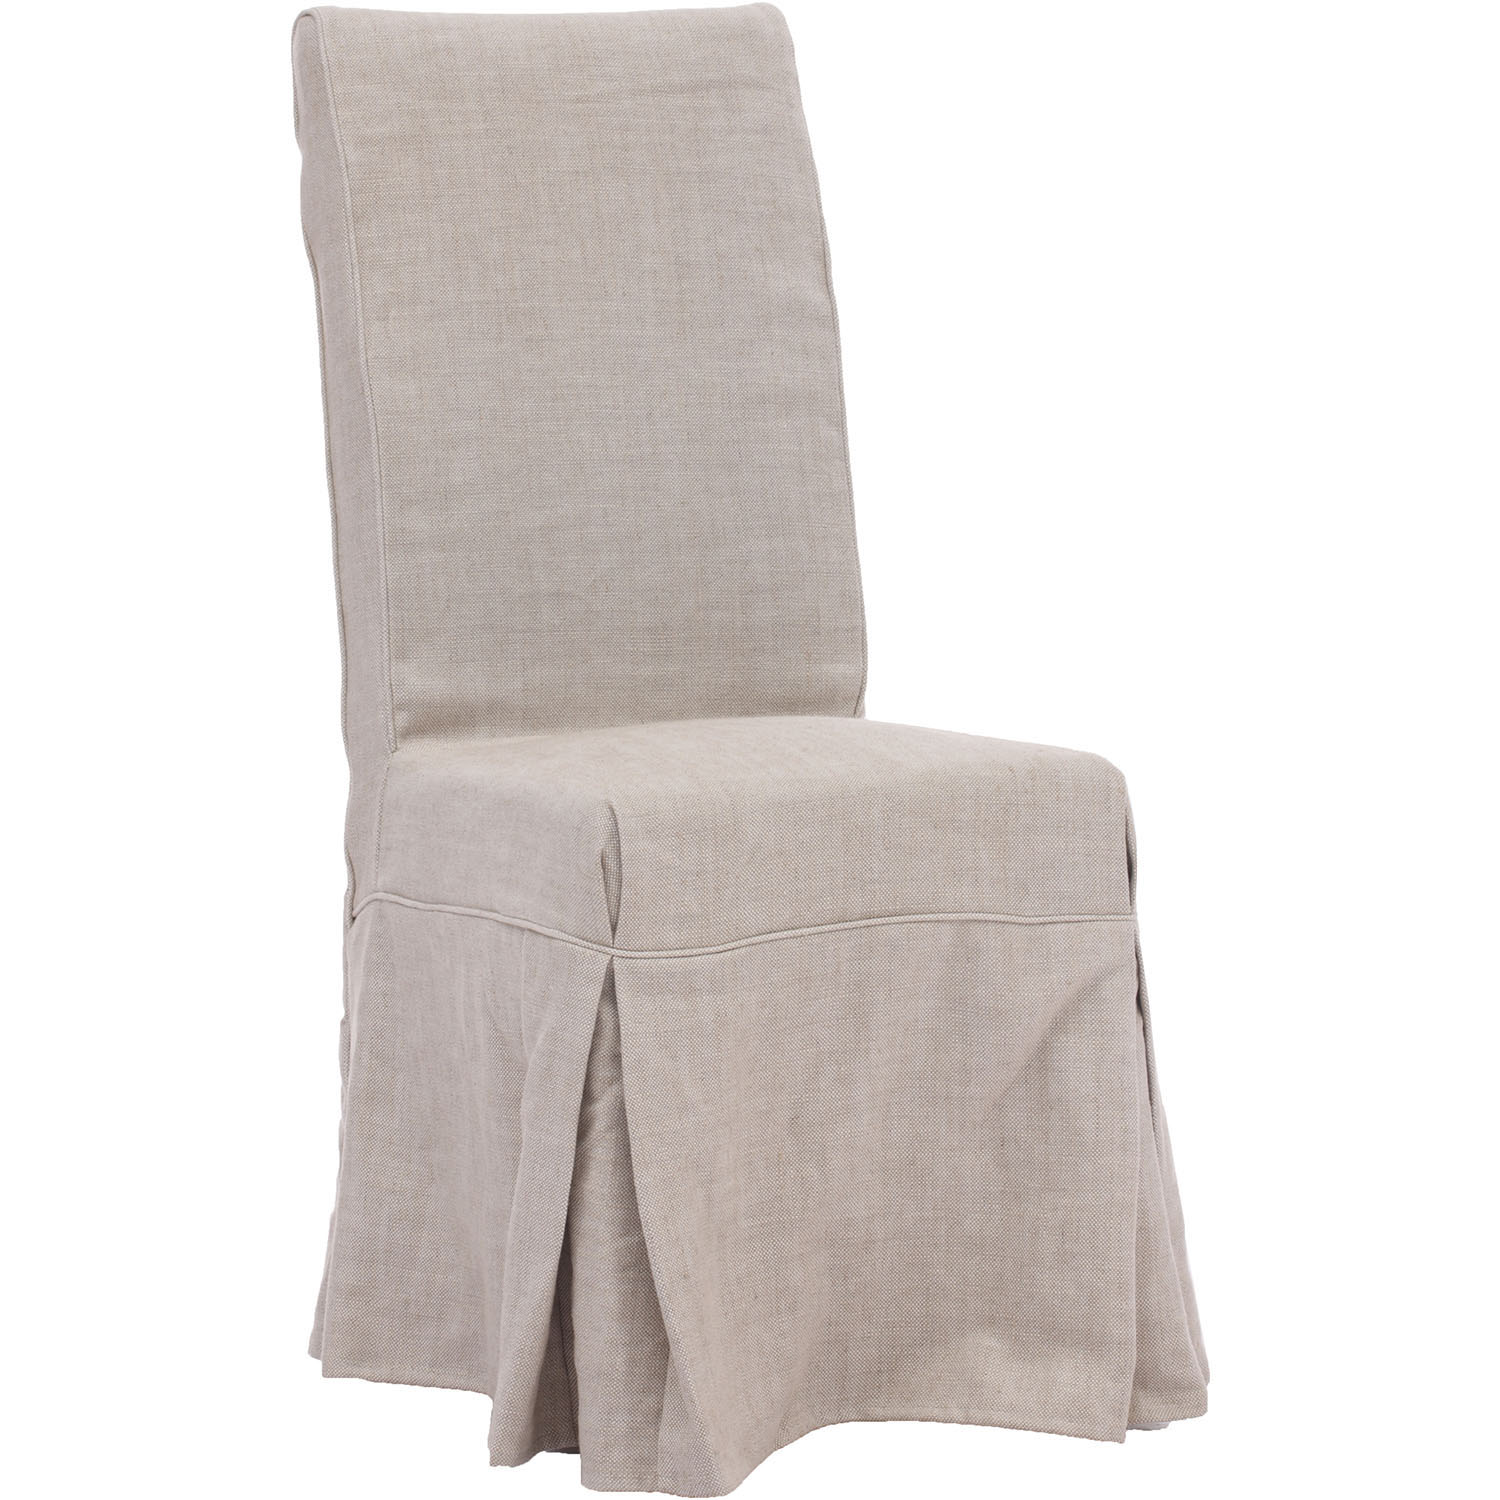 Info about Era Dog Patch Dining Chairs  Product Photo